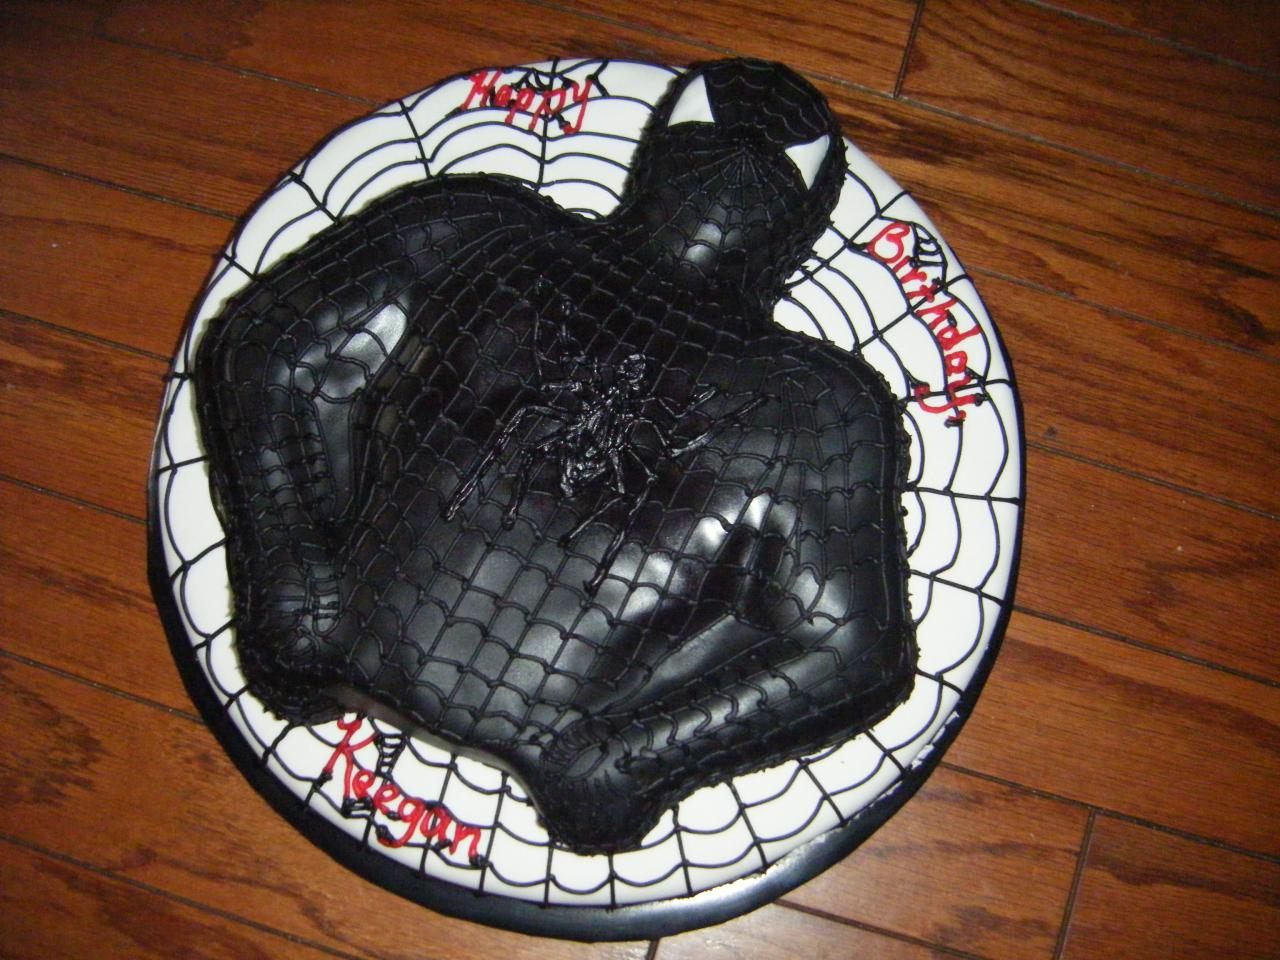 Black spiderman cakes - photo#7